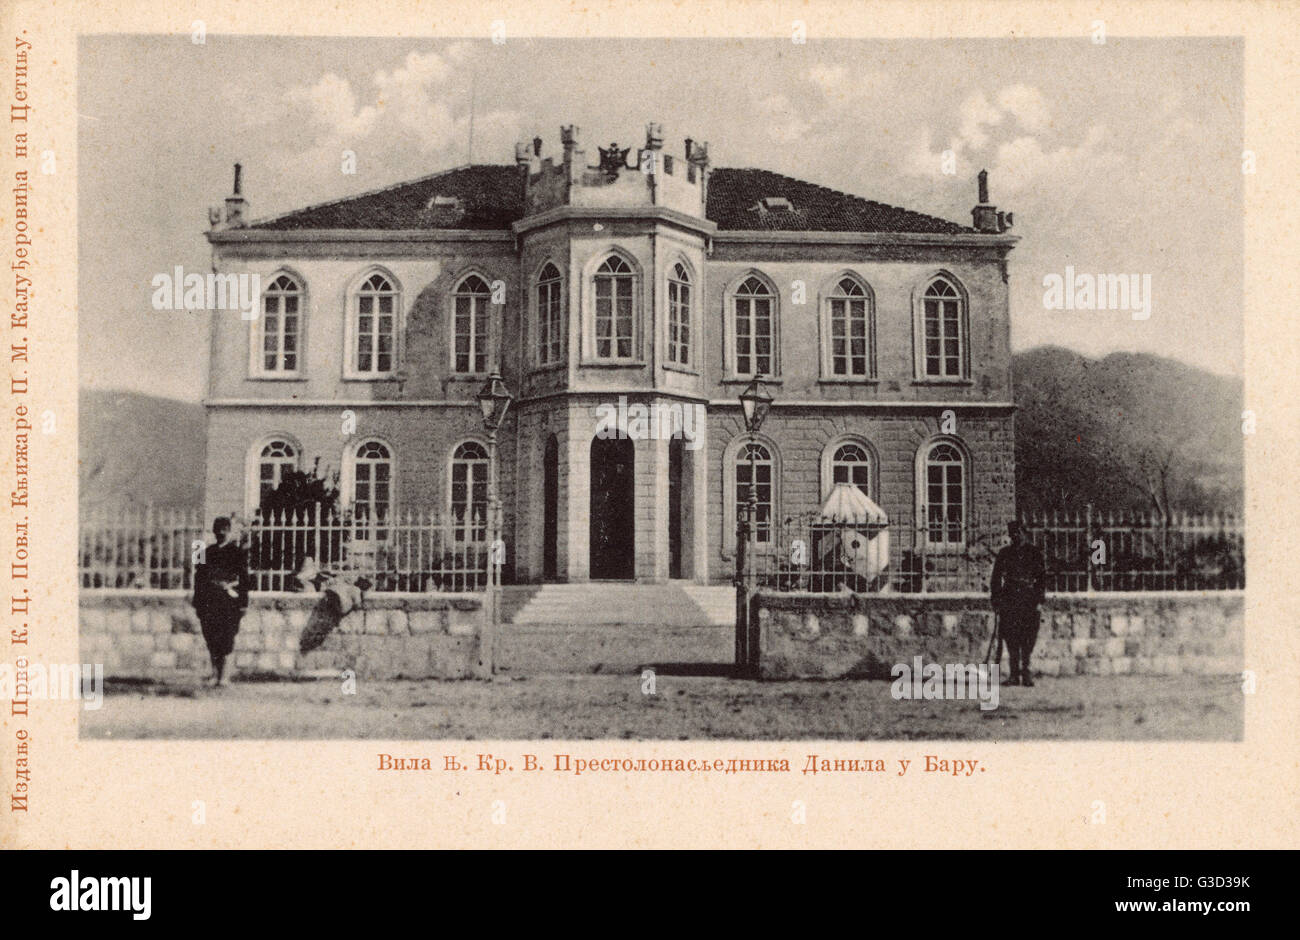 The Villa of Crown Prince Danilo, Bar, Cetinje, Montenegro - later became King Danilo I, who abdicated in 1921 in - Stock Image